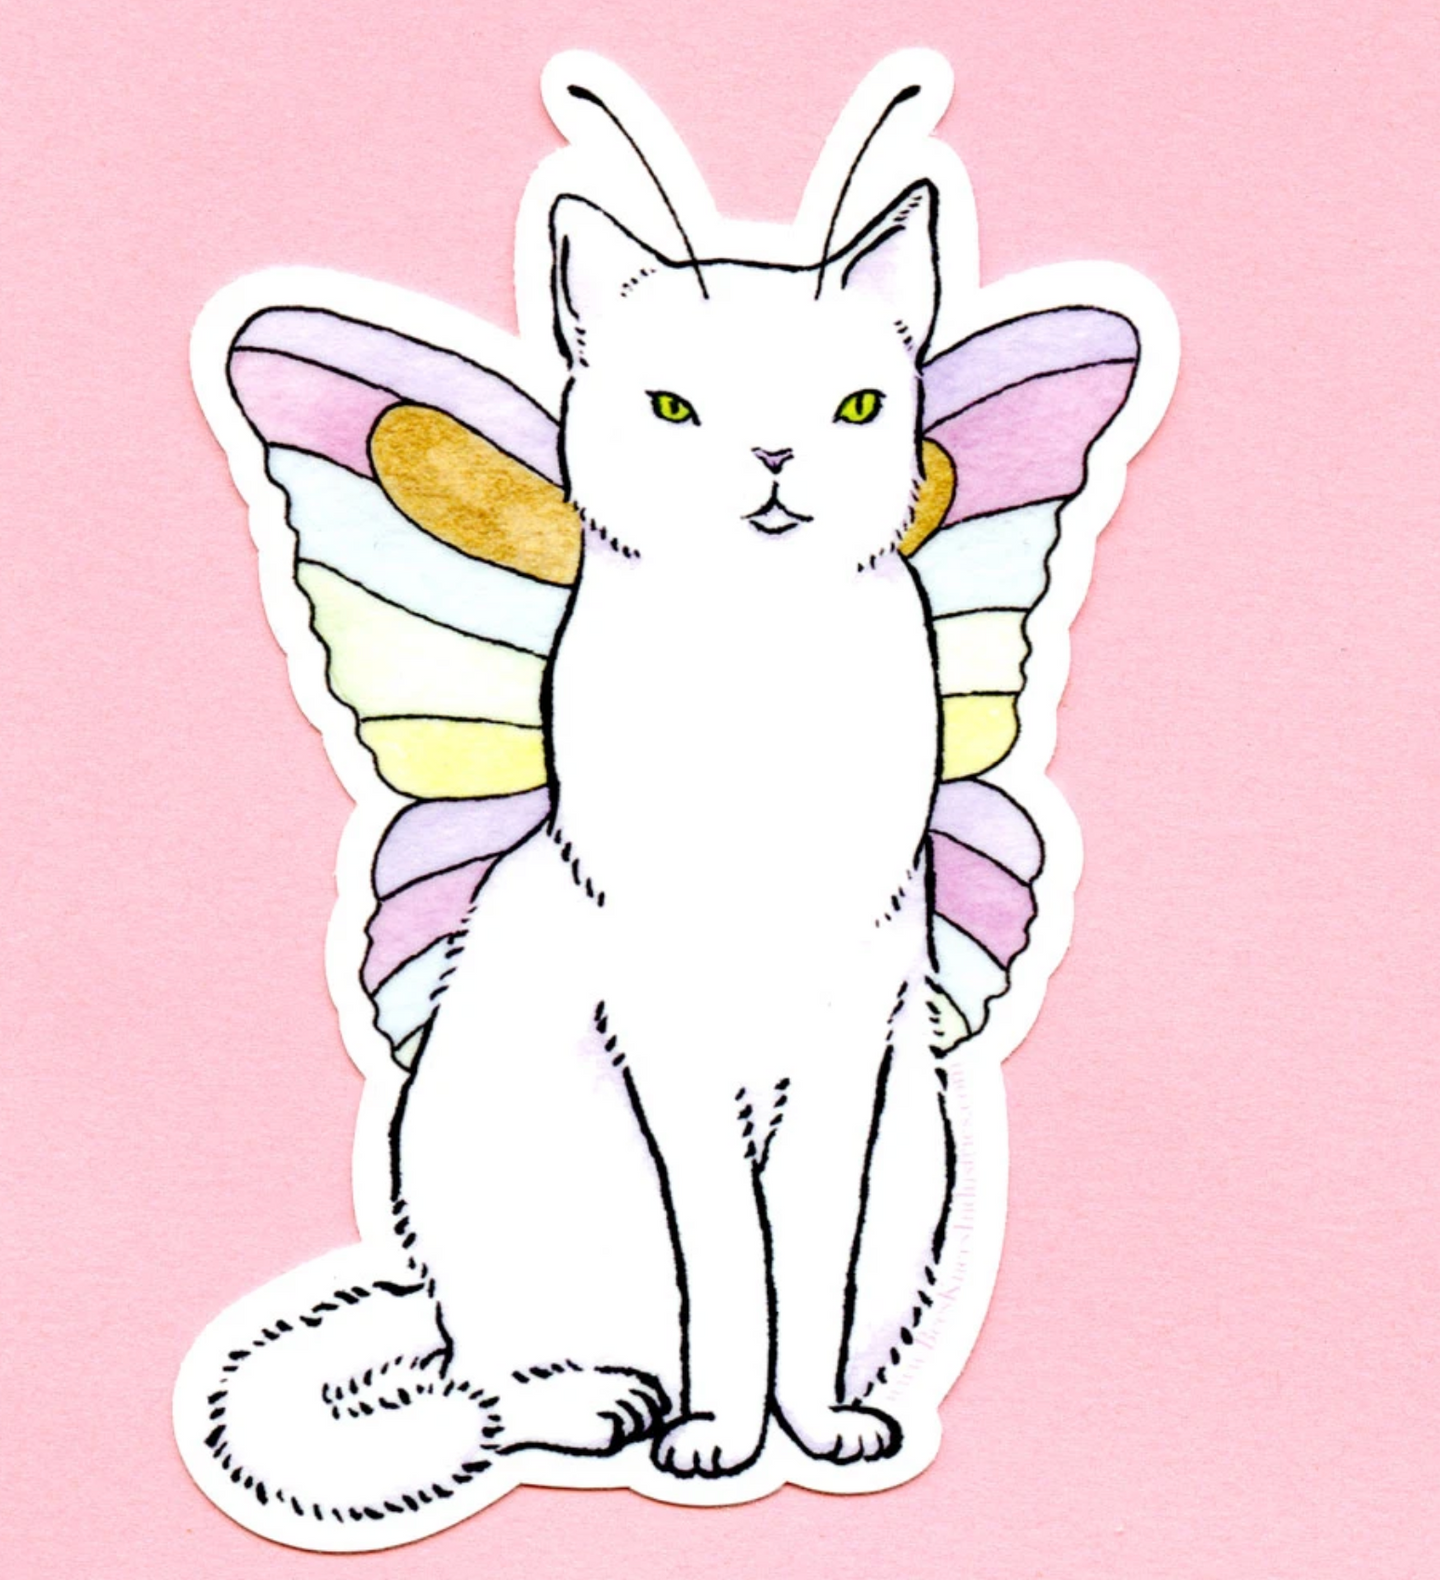 Sticker - Catterfly